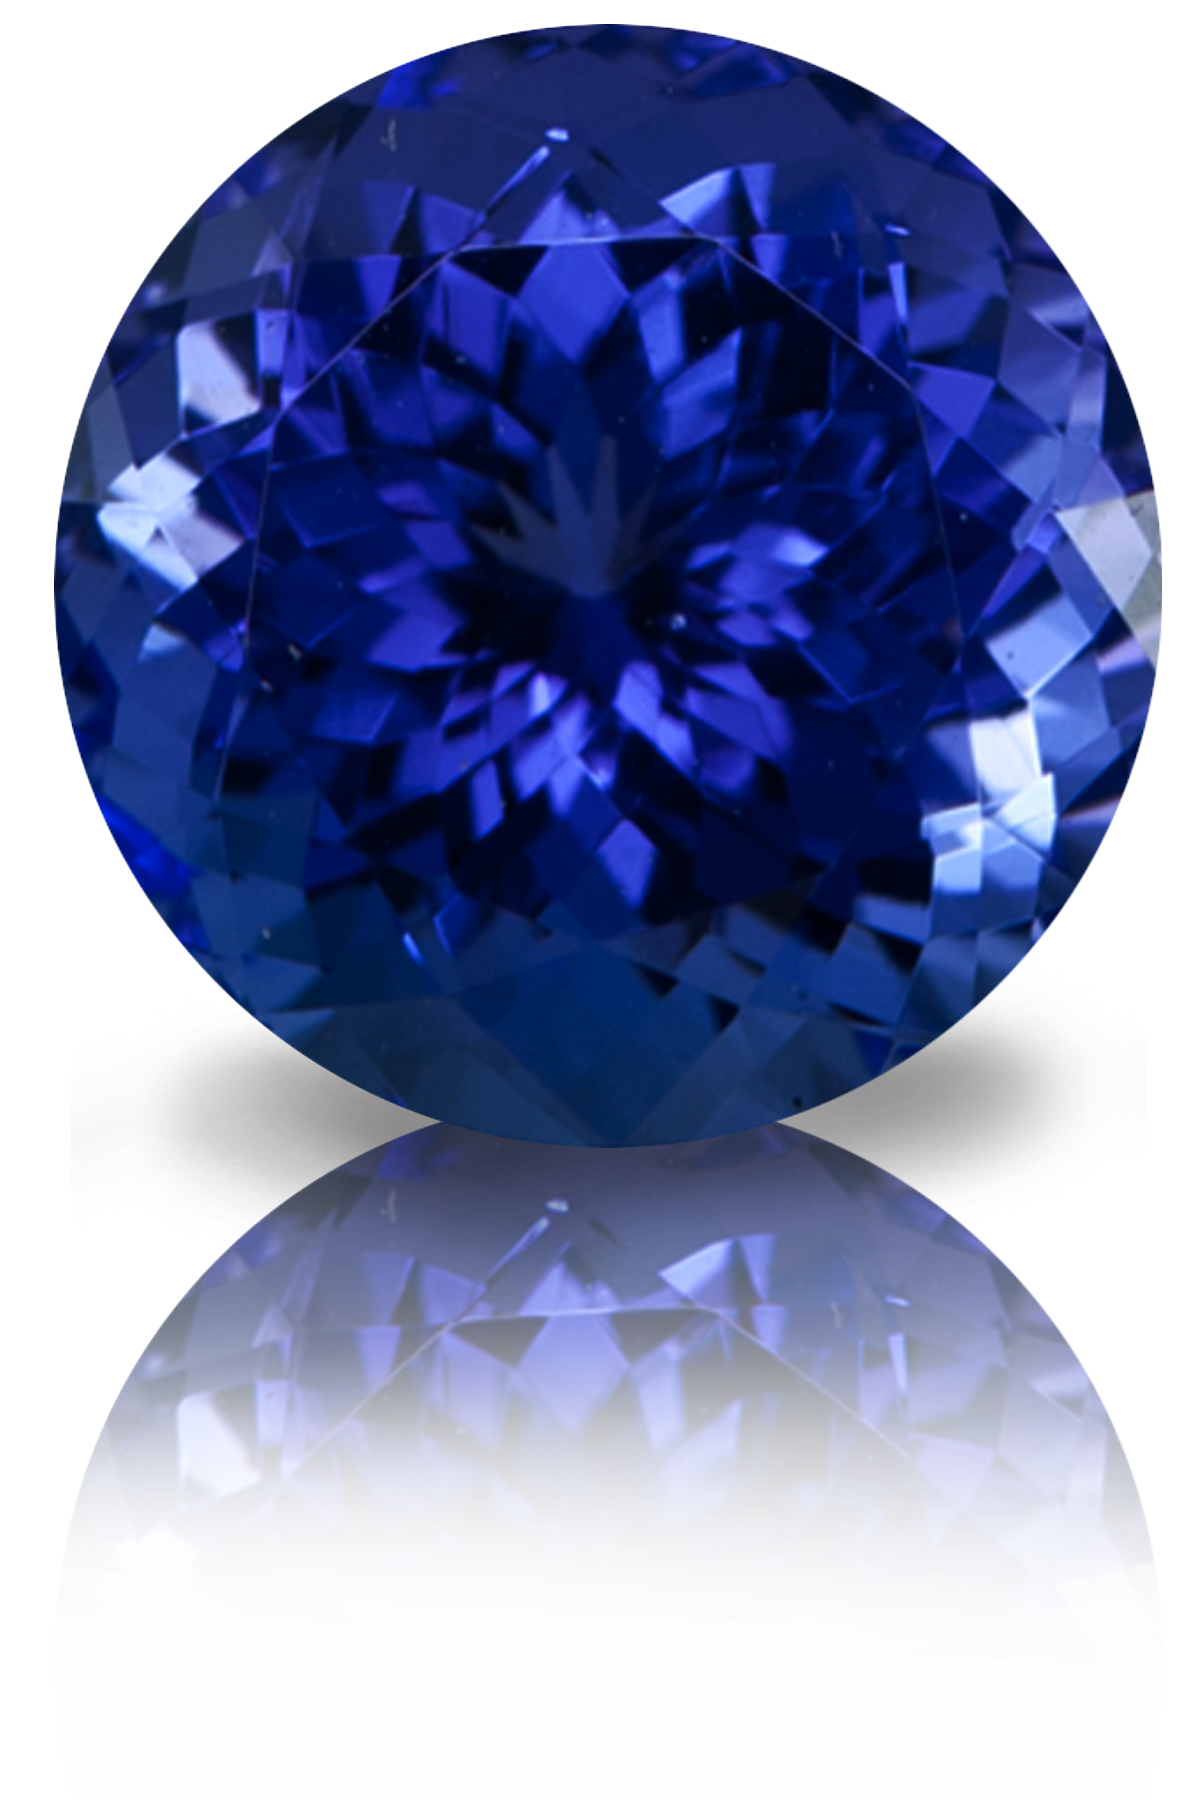 shop toptanzanite grade tanzania images investment stock best natural emerald tanzanite our for gemstones pinterest from on large fine in see cut